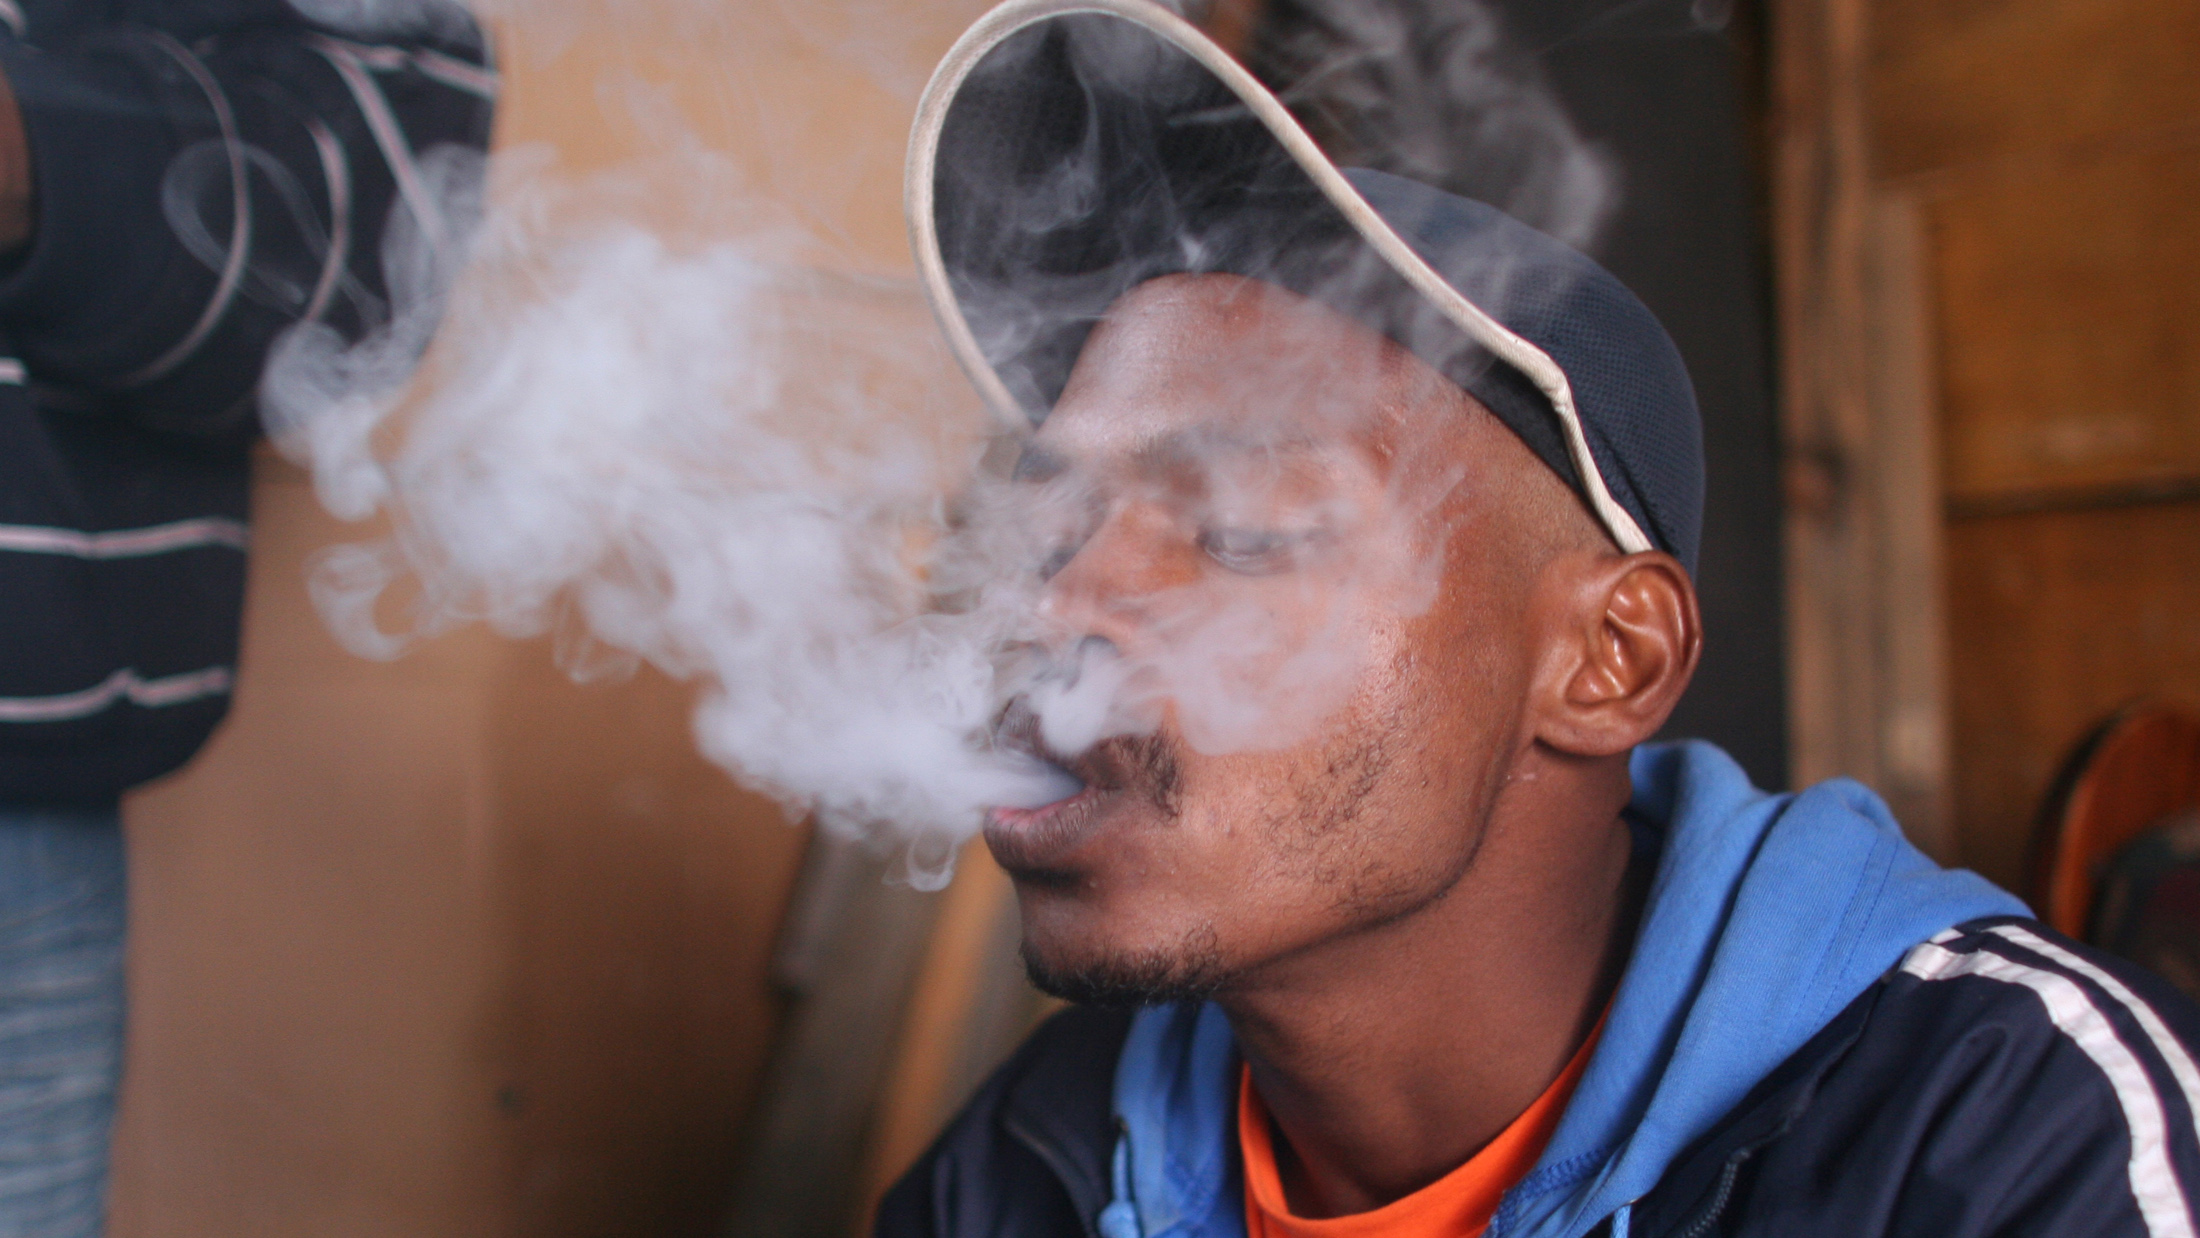 Smoking meths in Cape Flats, South Africa